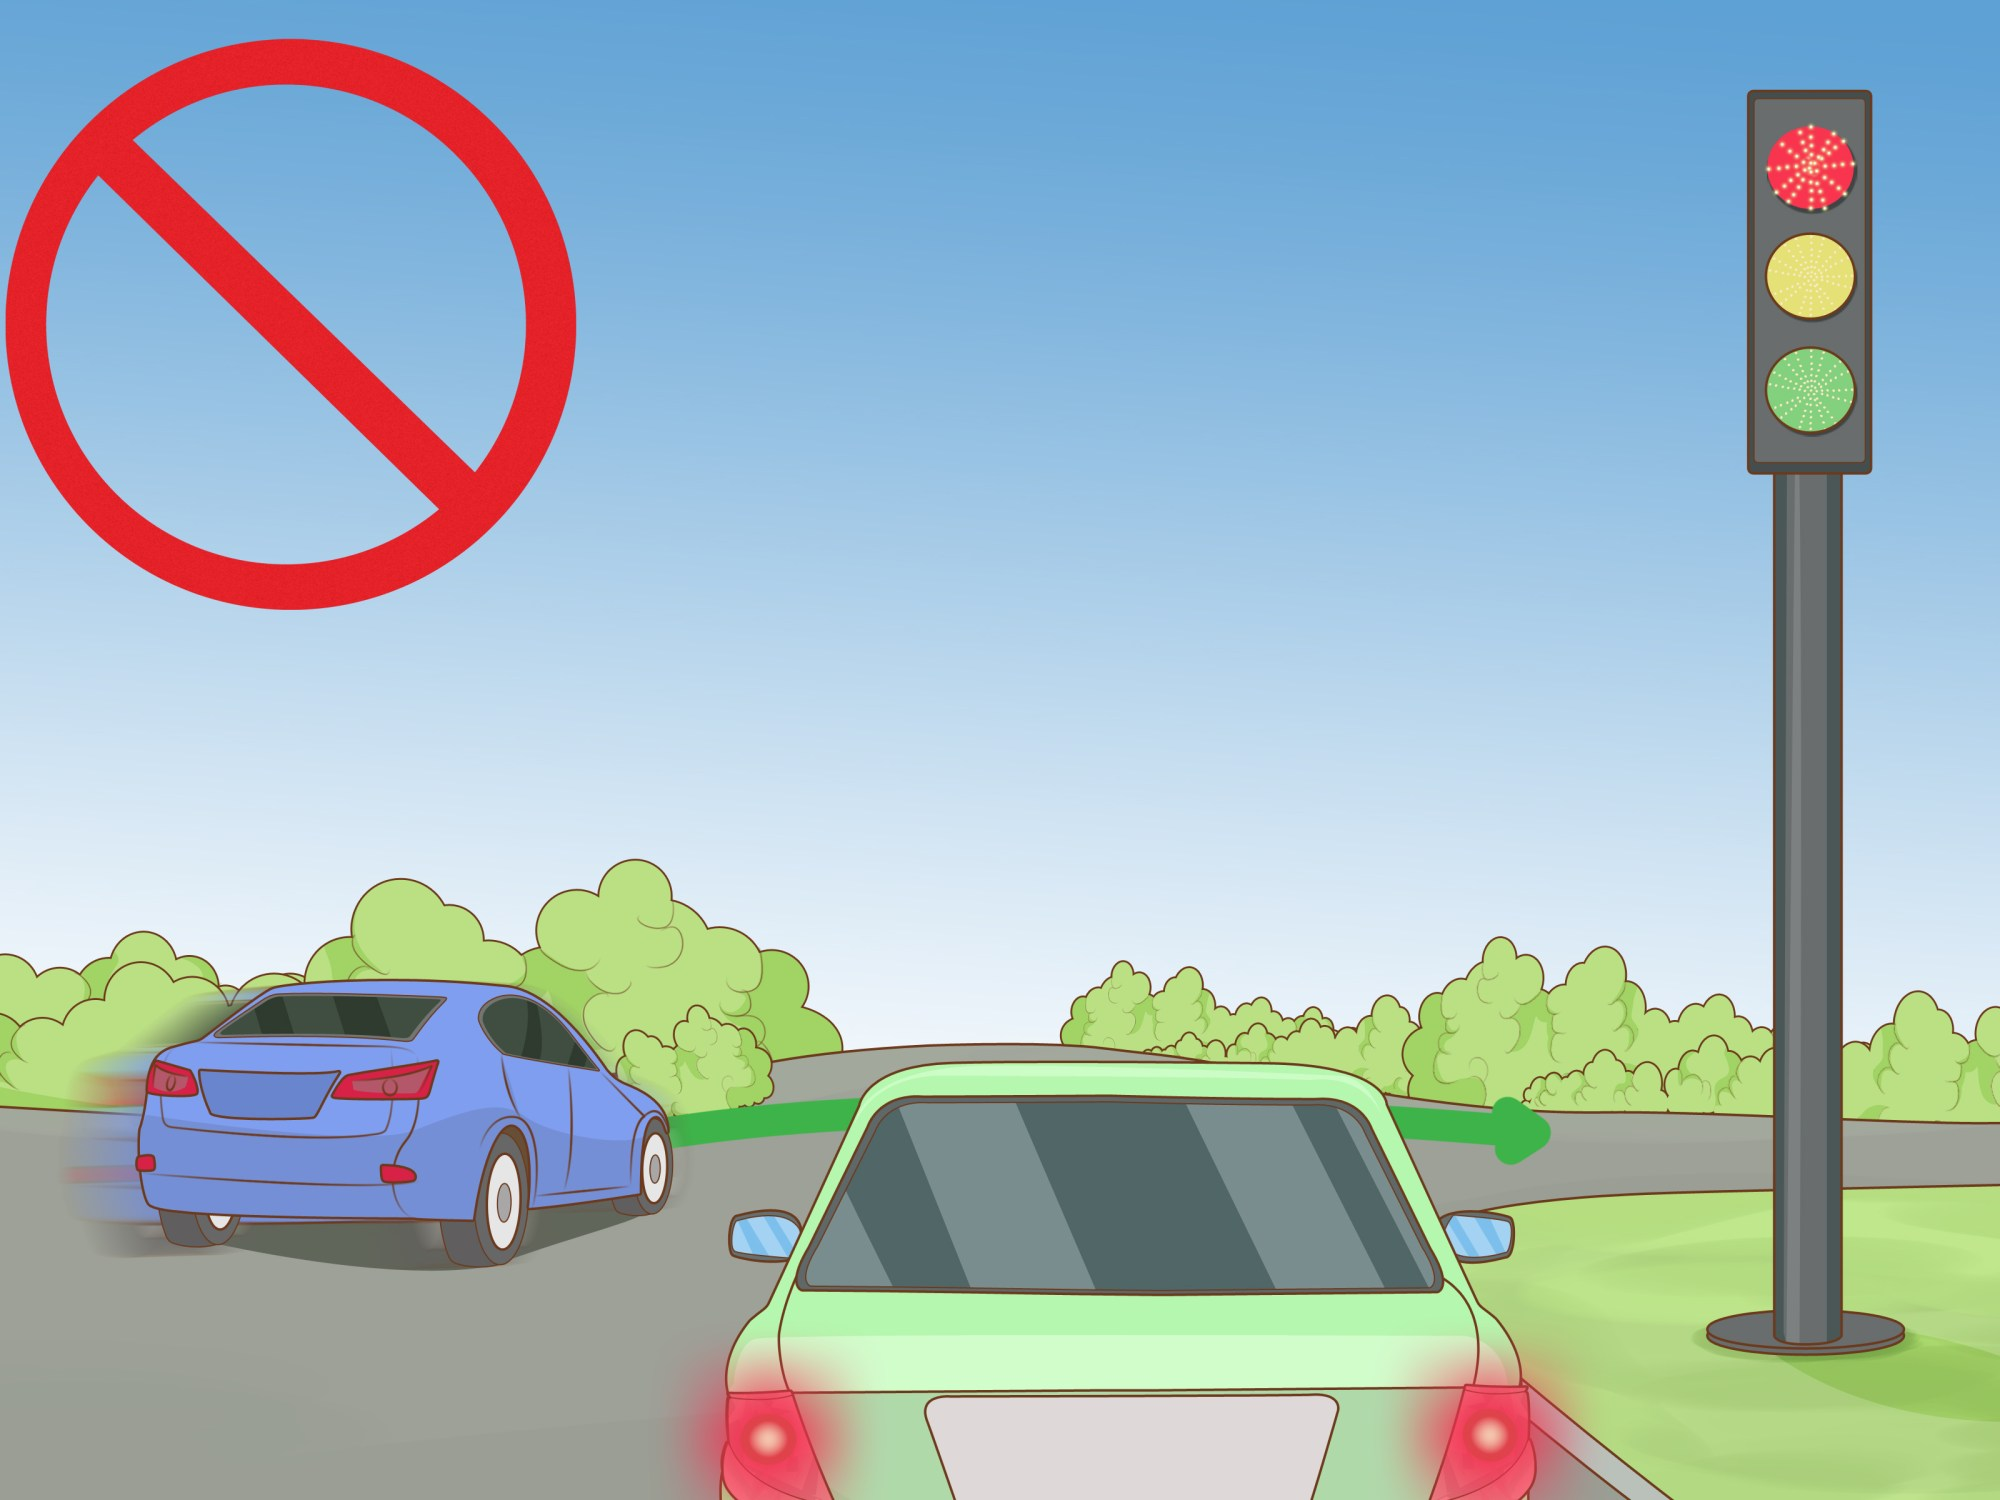 hight resolution of how to determine who has right of way